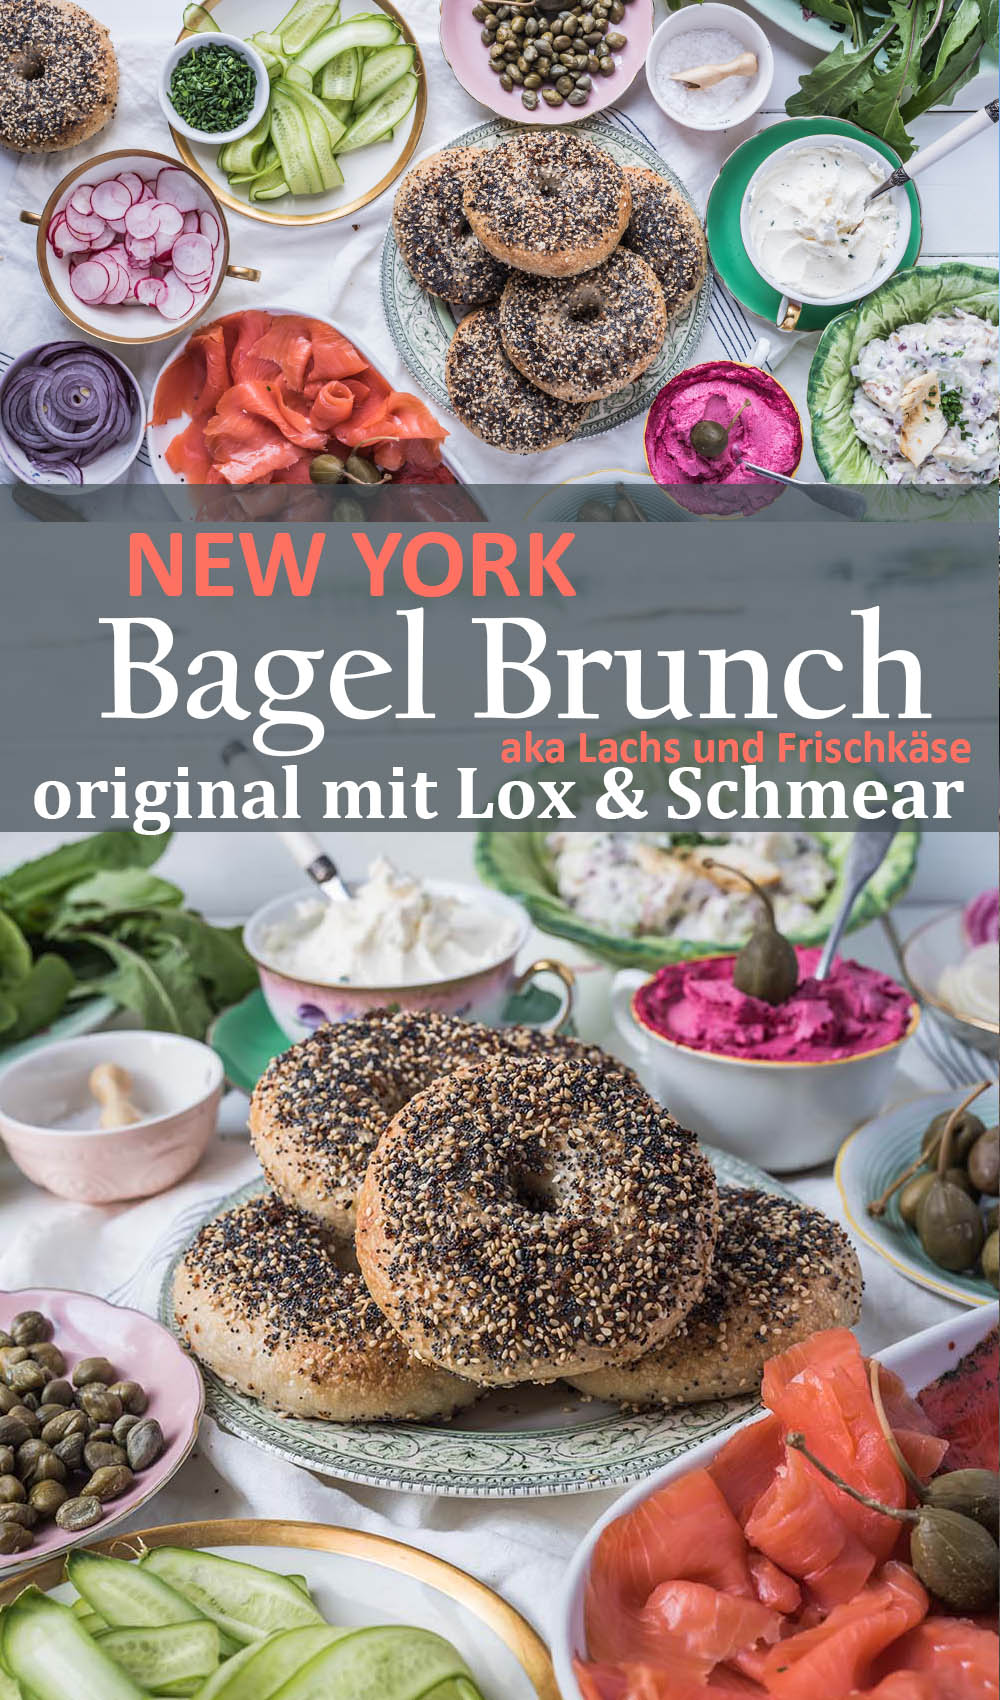 New York Bagel Brunch